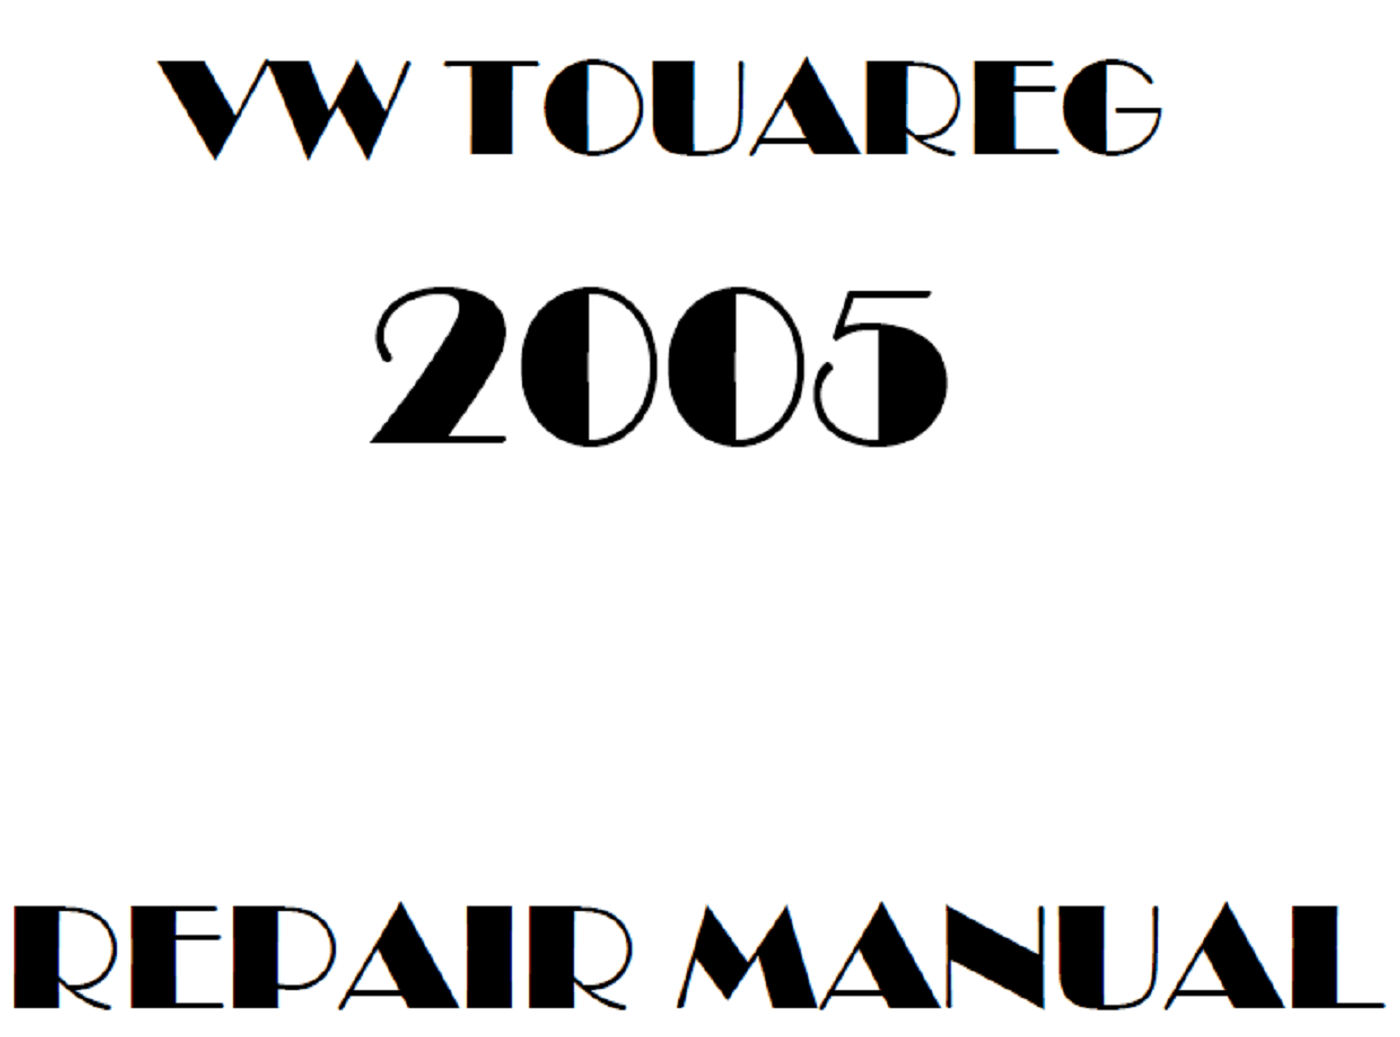 2005 Volkswagen Touareg repair manual